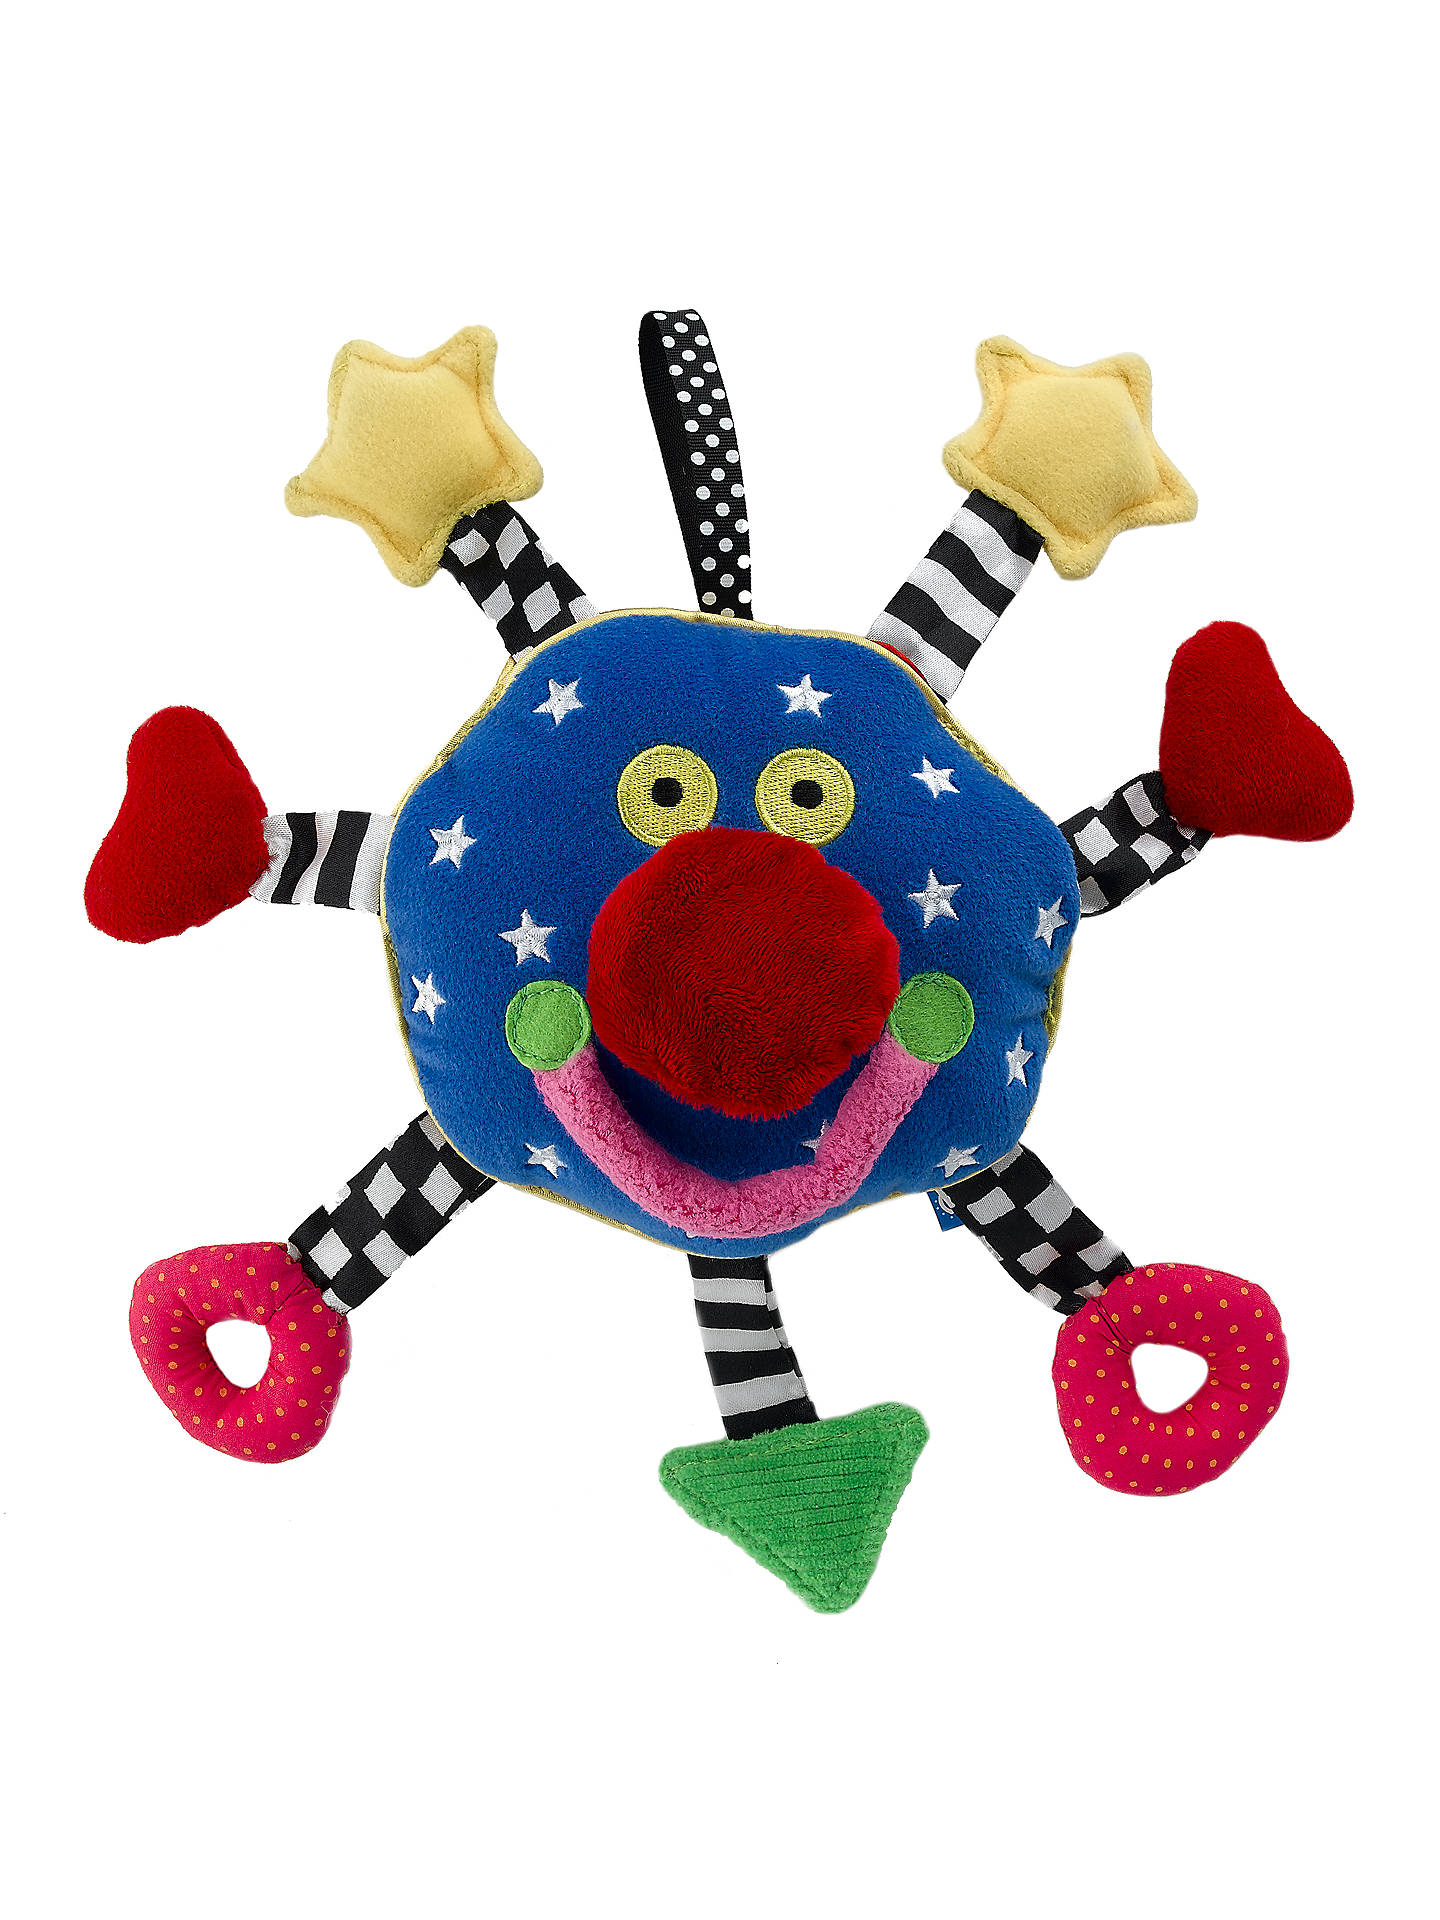 c6ebf937f Buy Whoozit Activity Toy Online at johnlewis.com ...